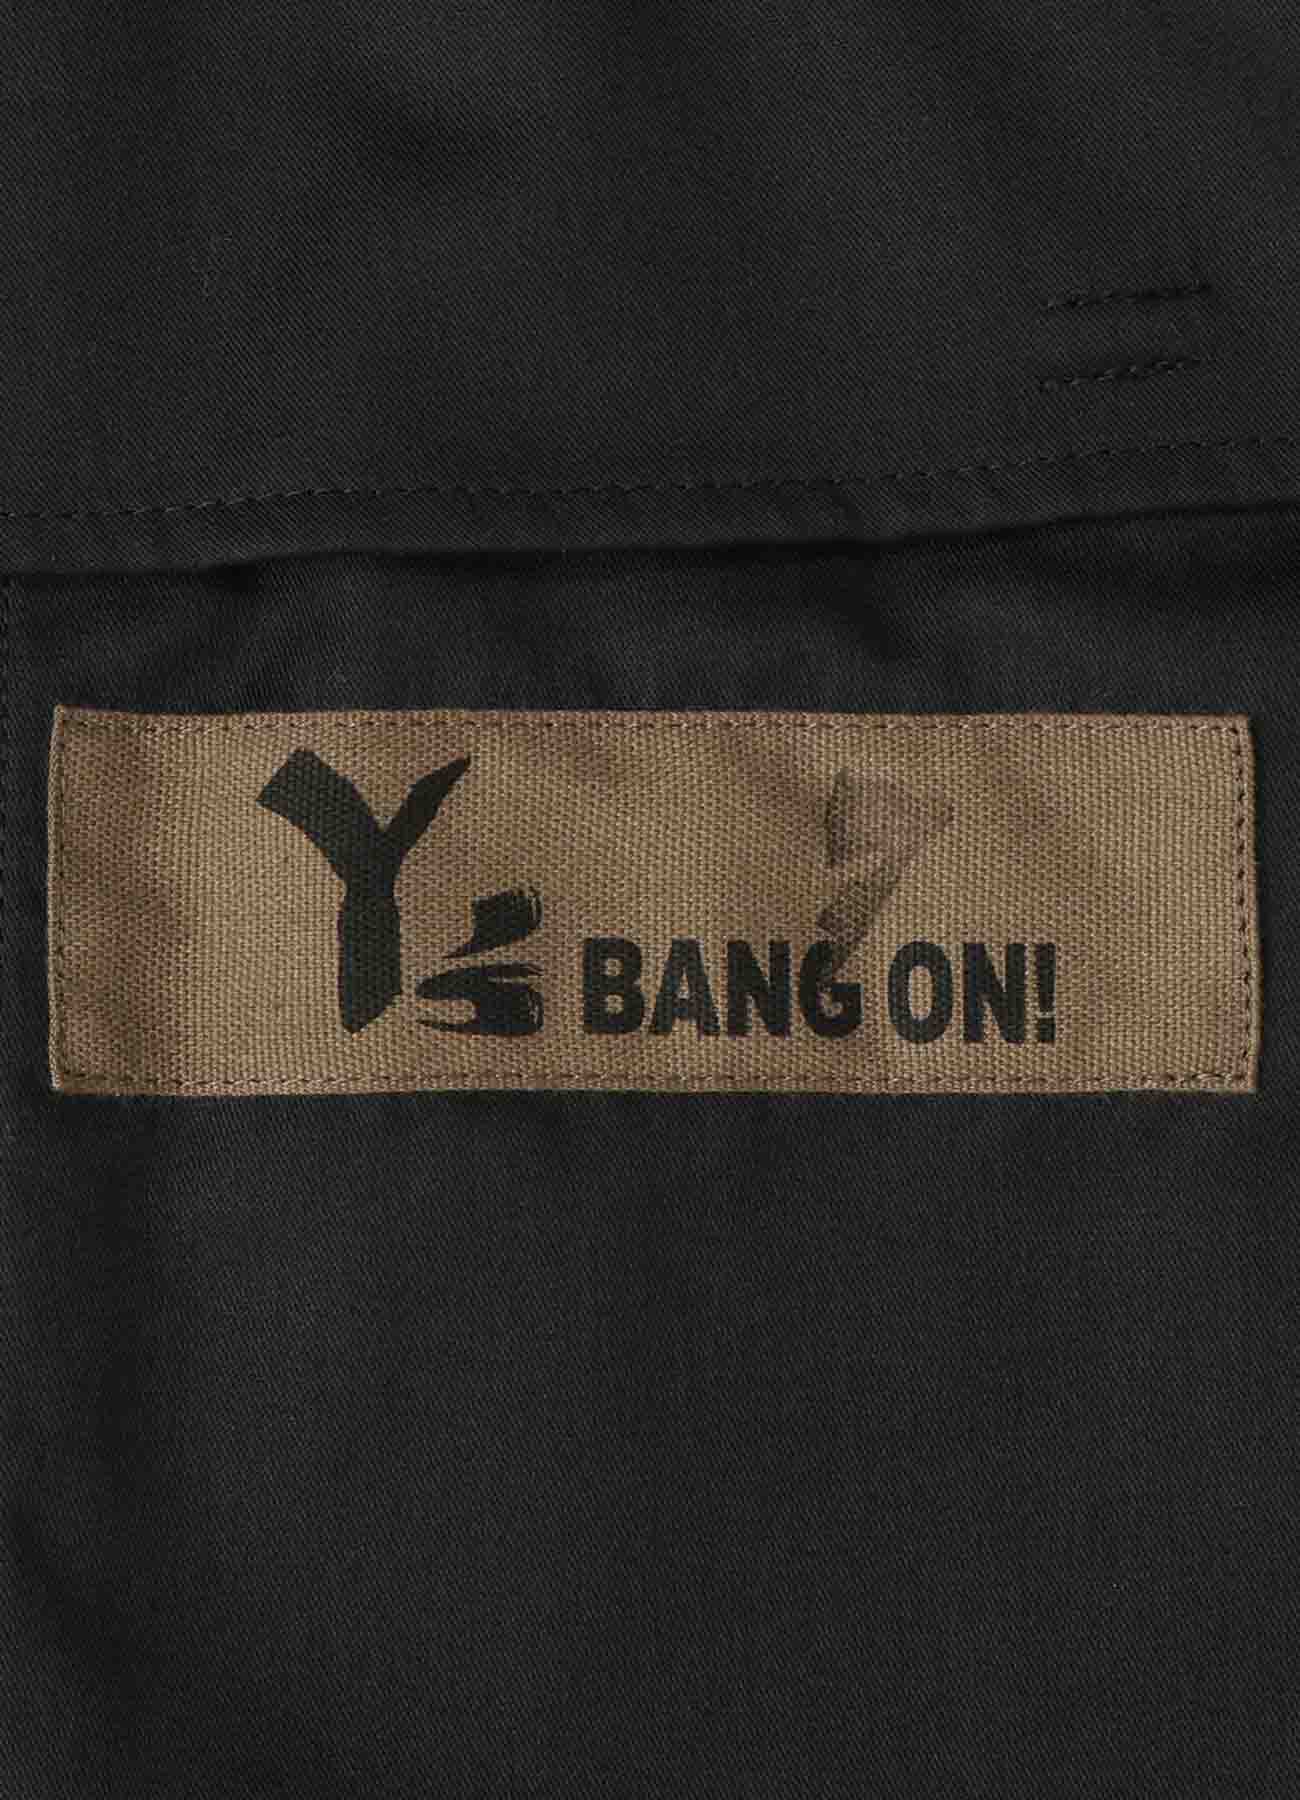 Y's BANG ON!No.07 Waist string-Pants Wool Flannel